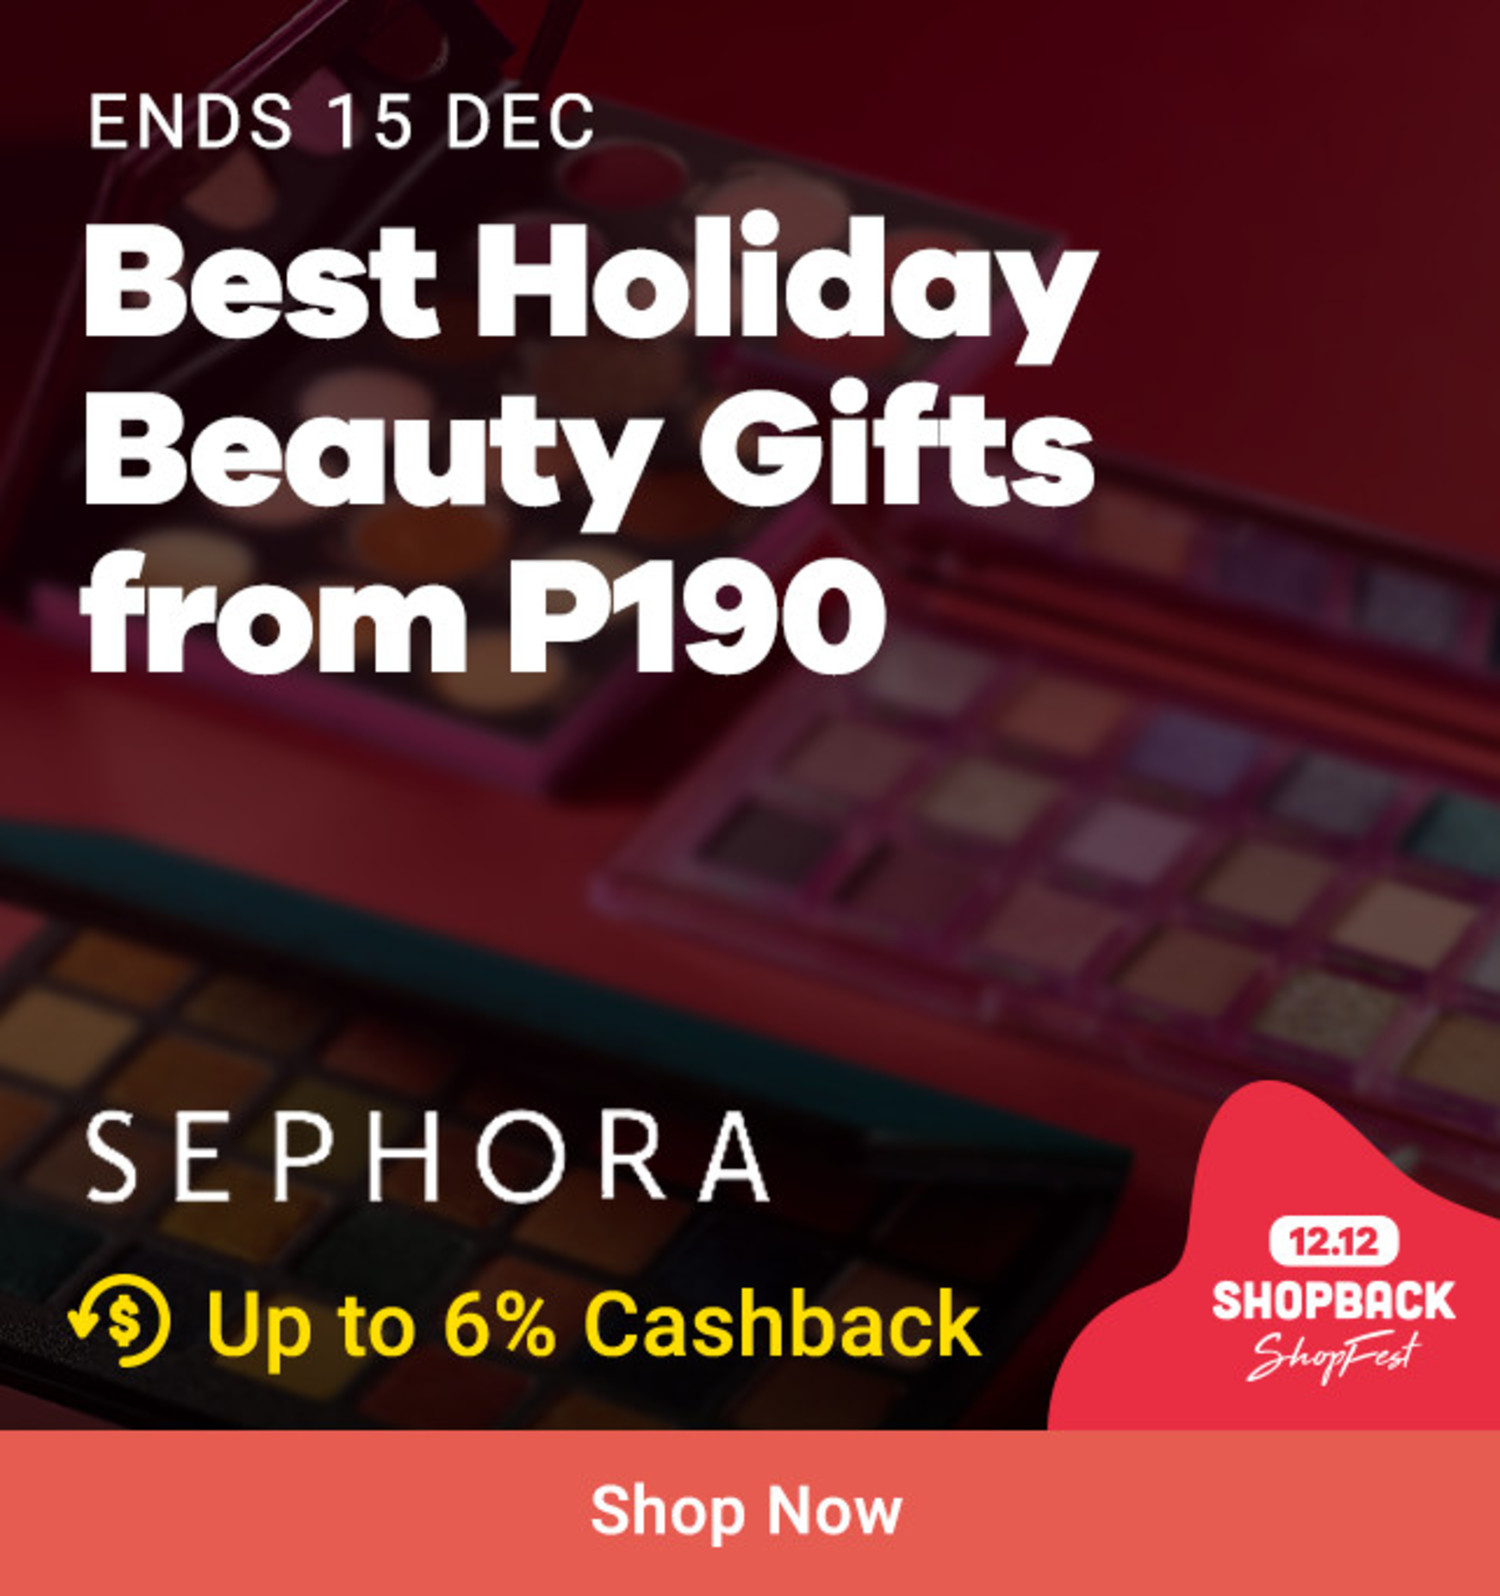 Sephora: Best Holiday Beauty Gifts from P190